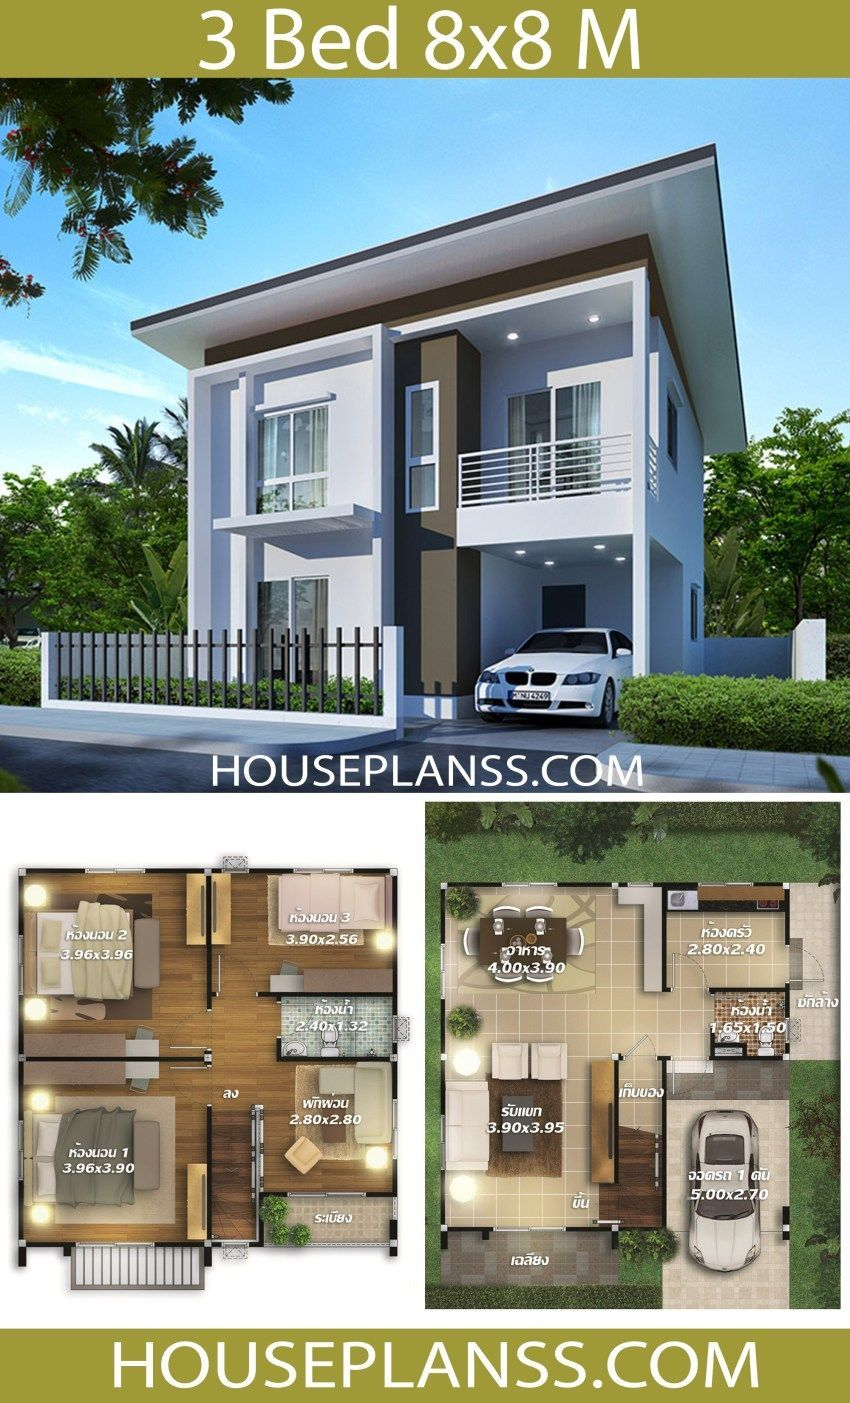 House Plans 8x8 With 3 Bedrooms House Plans Sam In 2020 House Plan Gallery 2 Storey House Design Duplex House Design